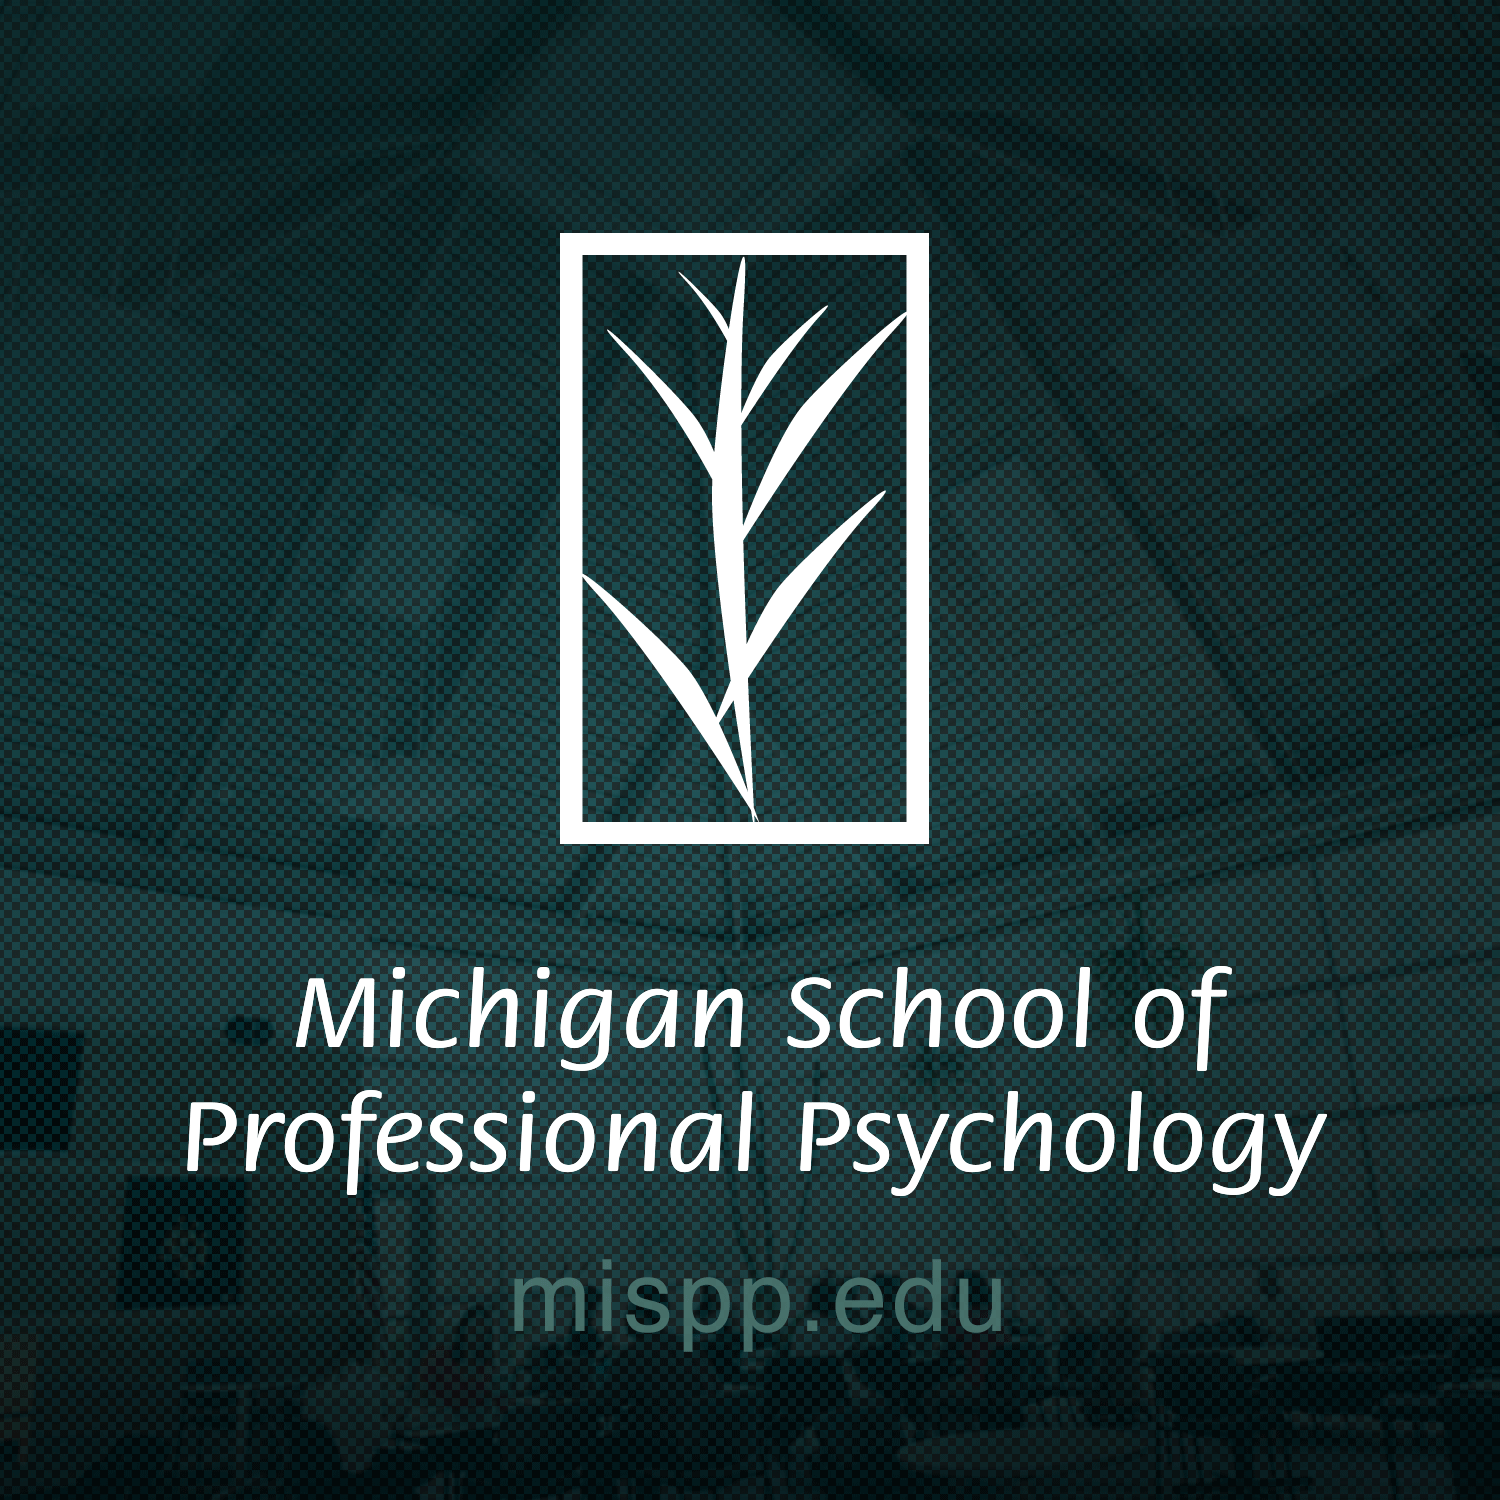 Michigan School Of Professional Psychology - The Michigan School of Professional Psychology (MiSPP) - MiSPP ... - The Michigan School of Professional Psychology (MiSPP) provides masters and   doctoral (PsyD) clinical psychology programs to graduate students.